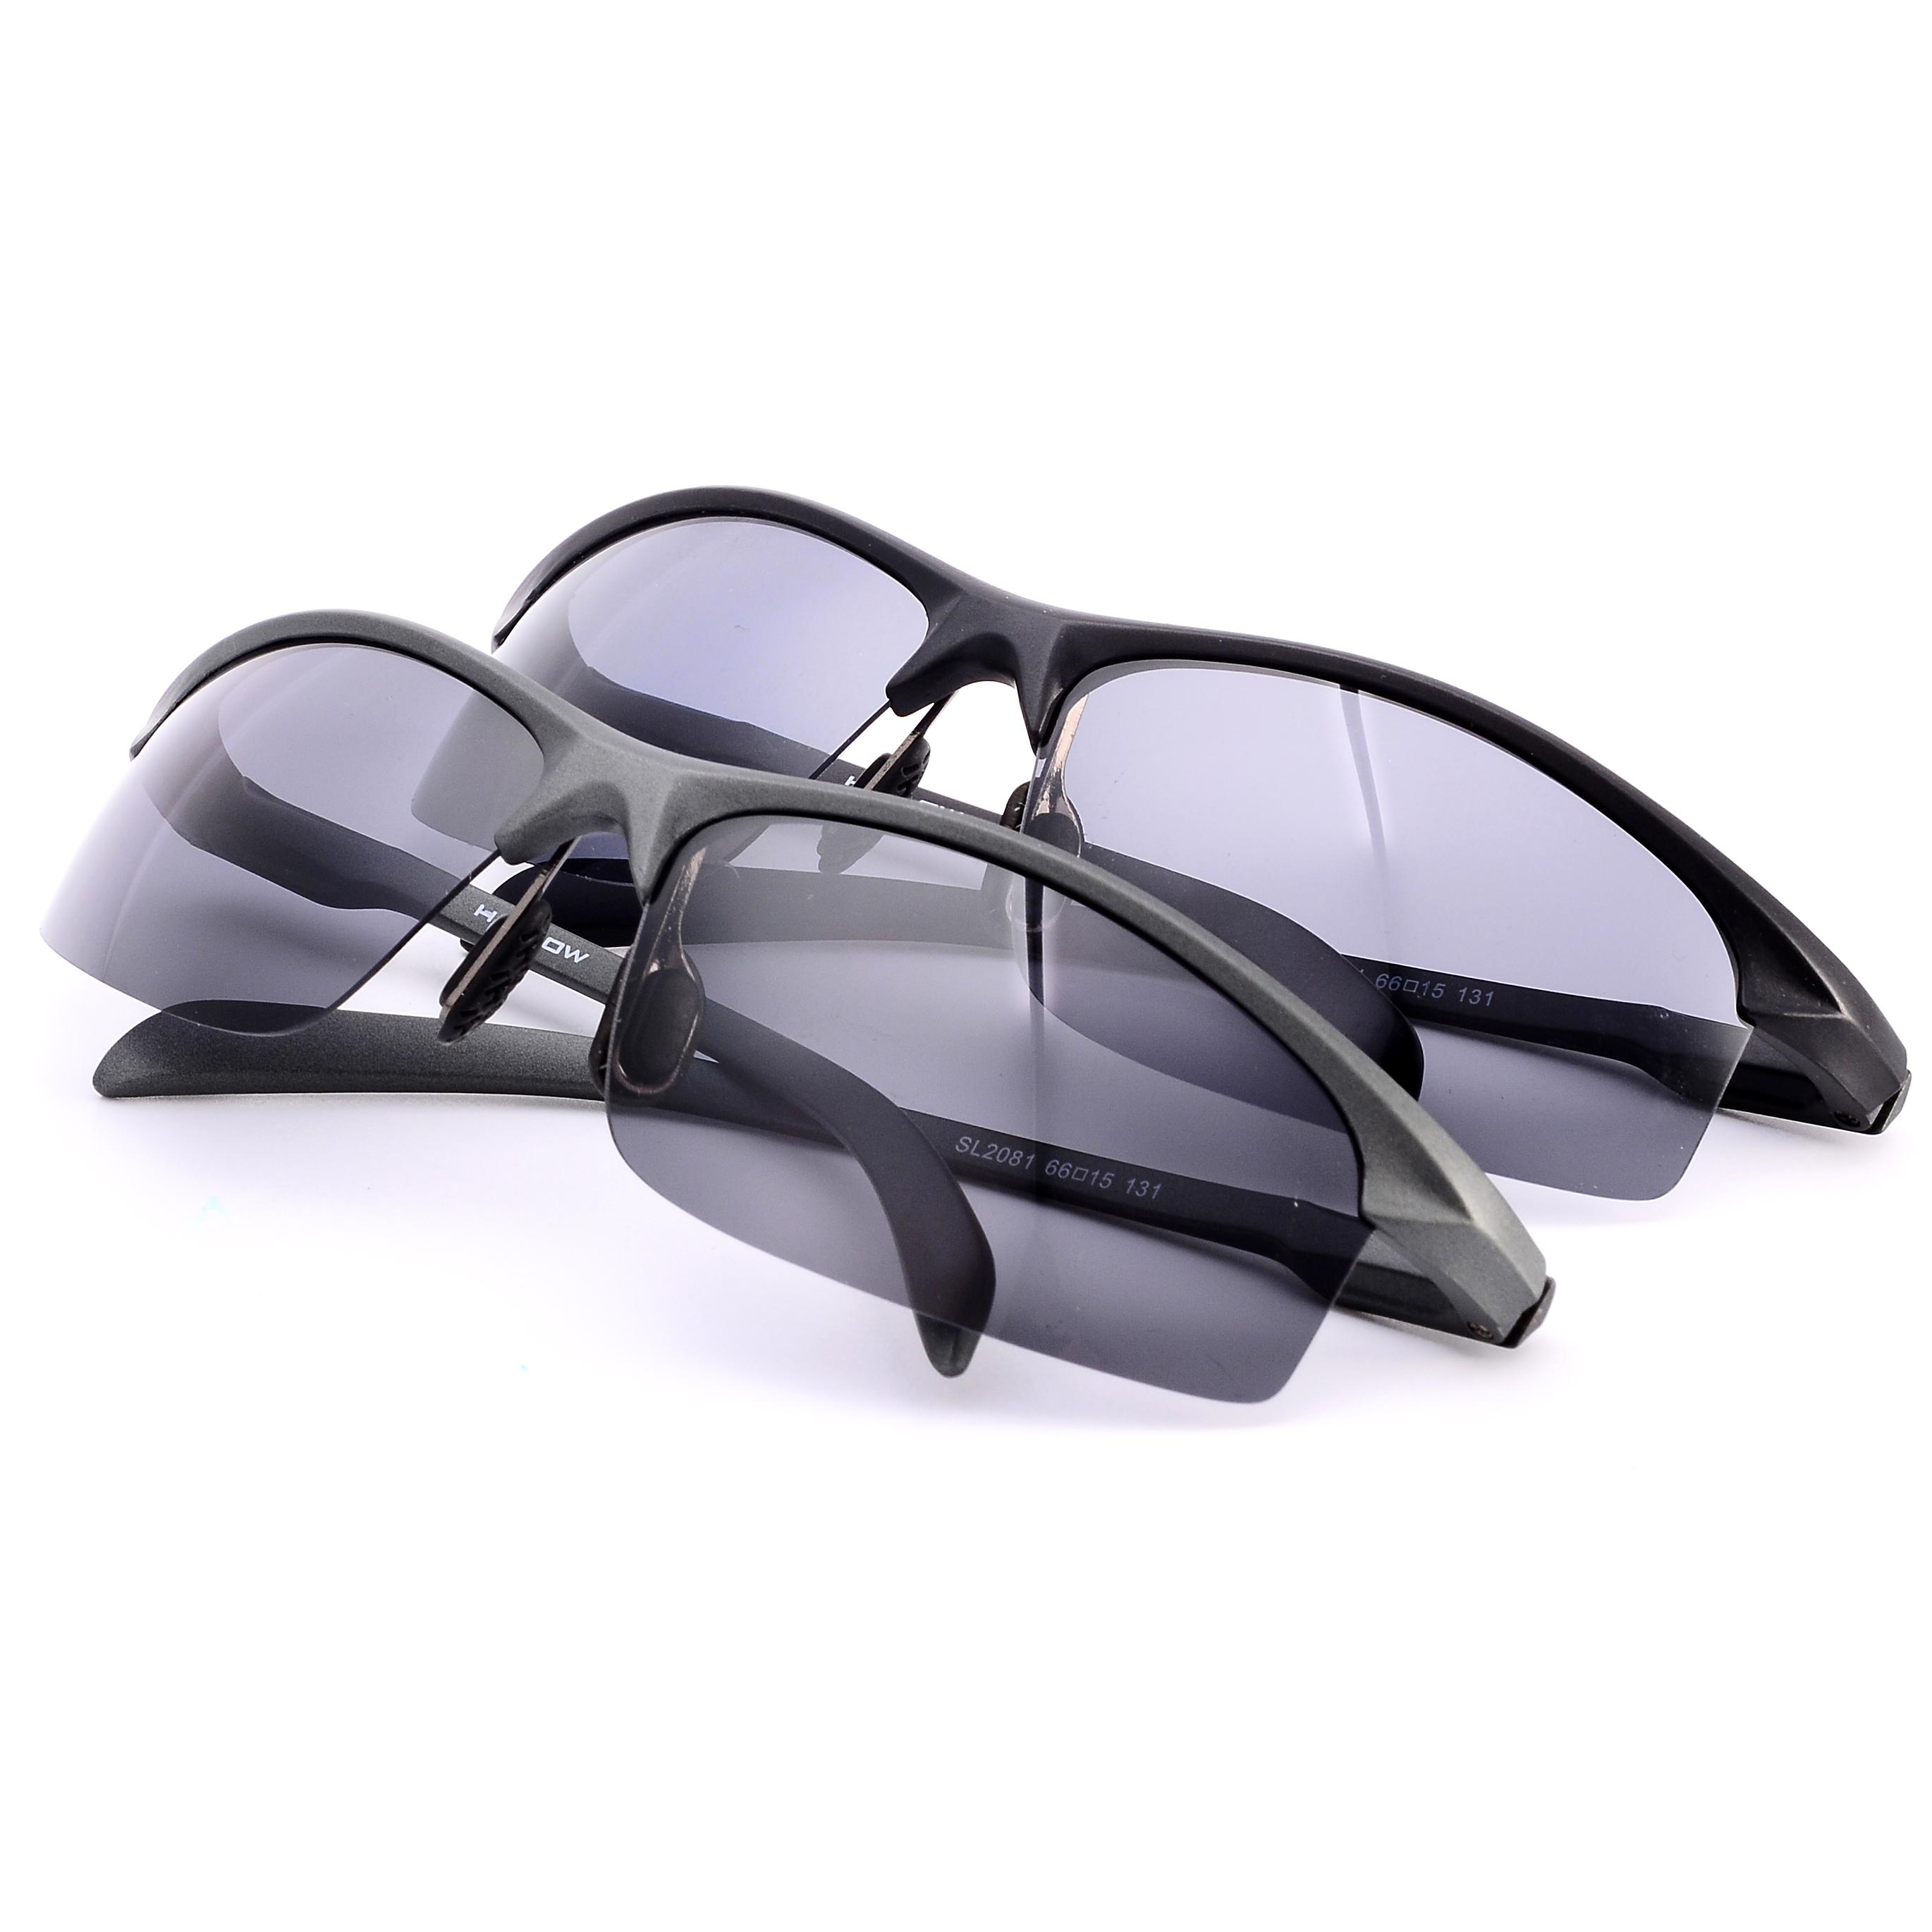 ojixr wholesale oakley sunglass, wholesale oakley sunglass UK,Men